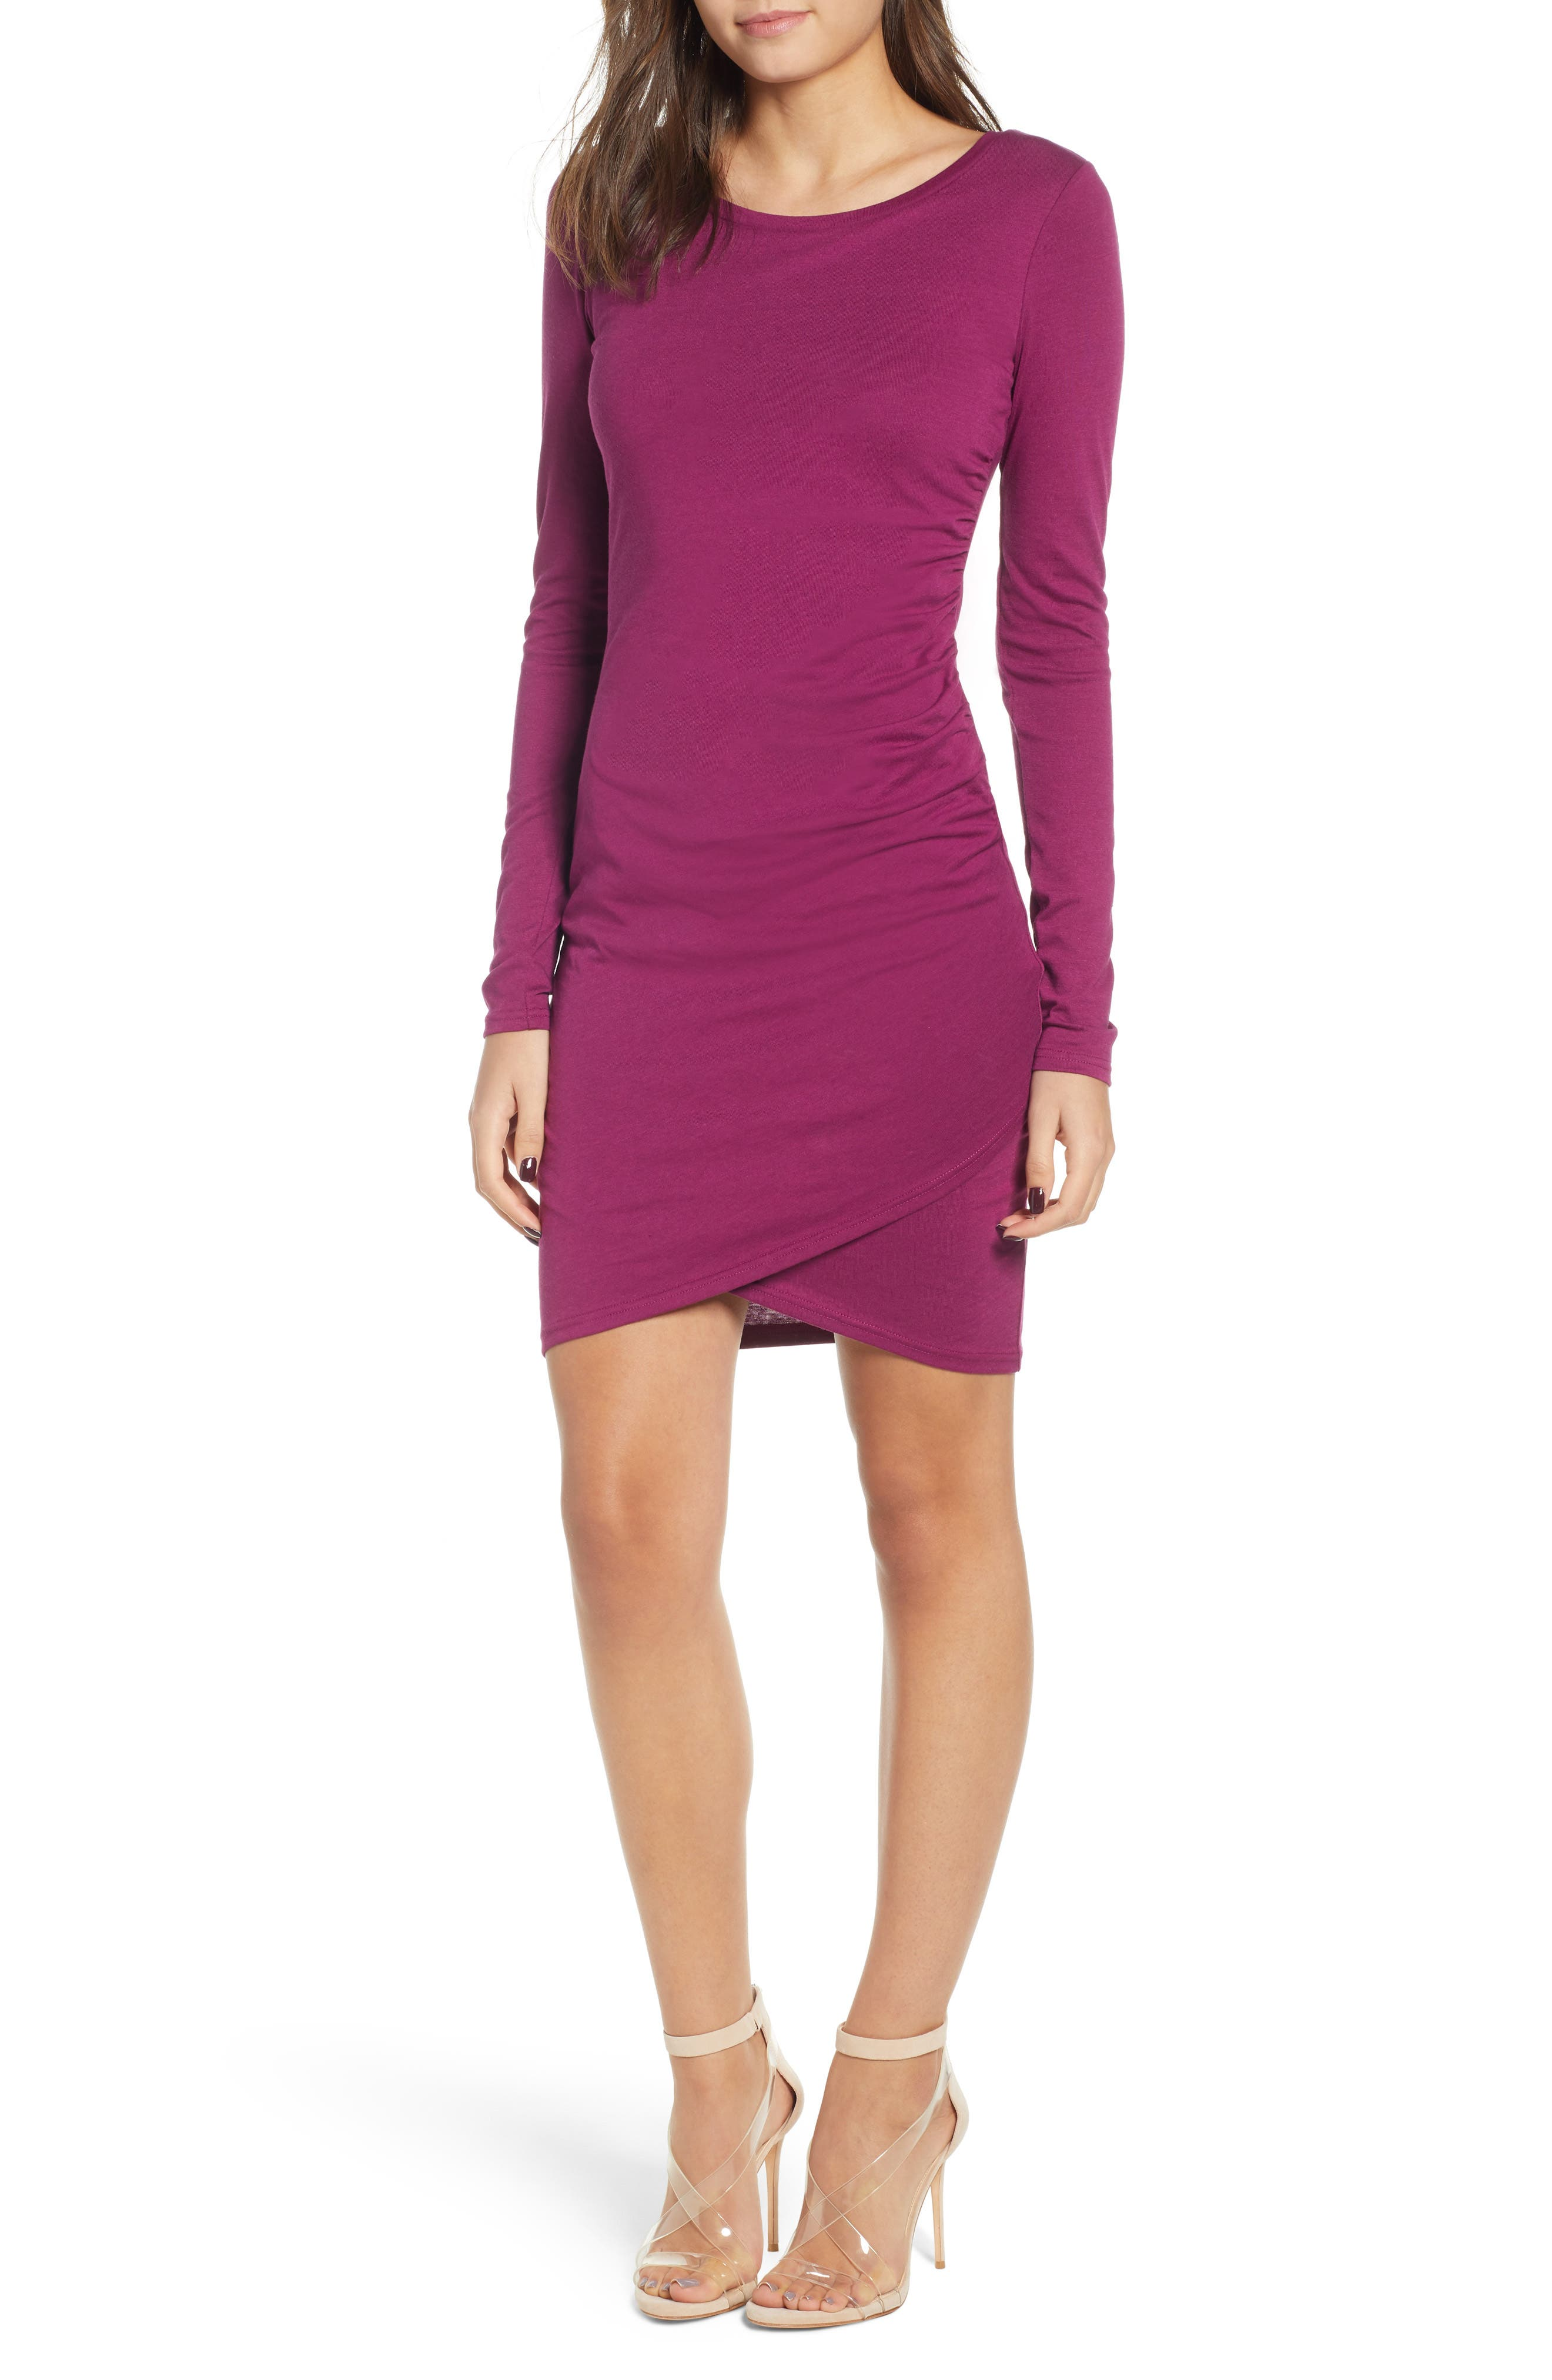 Casual Cocktail Dress with Sleeves